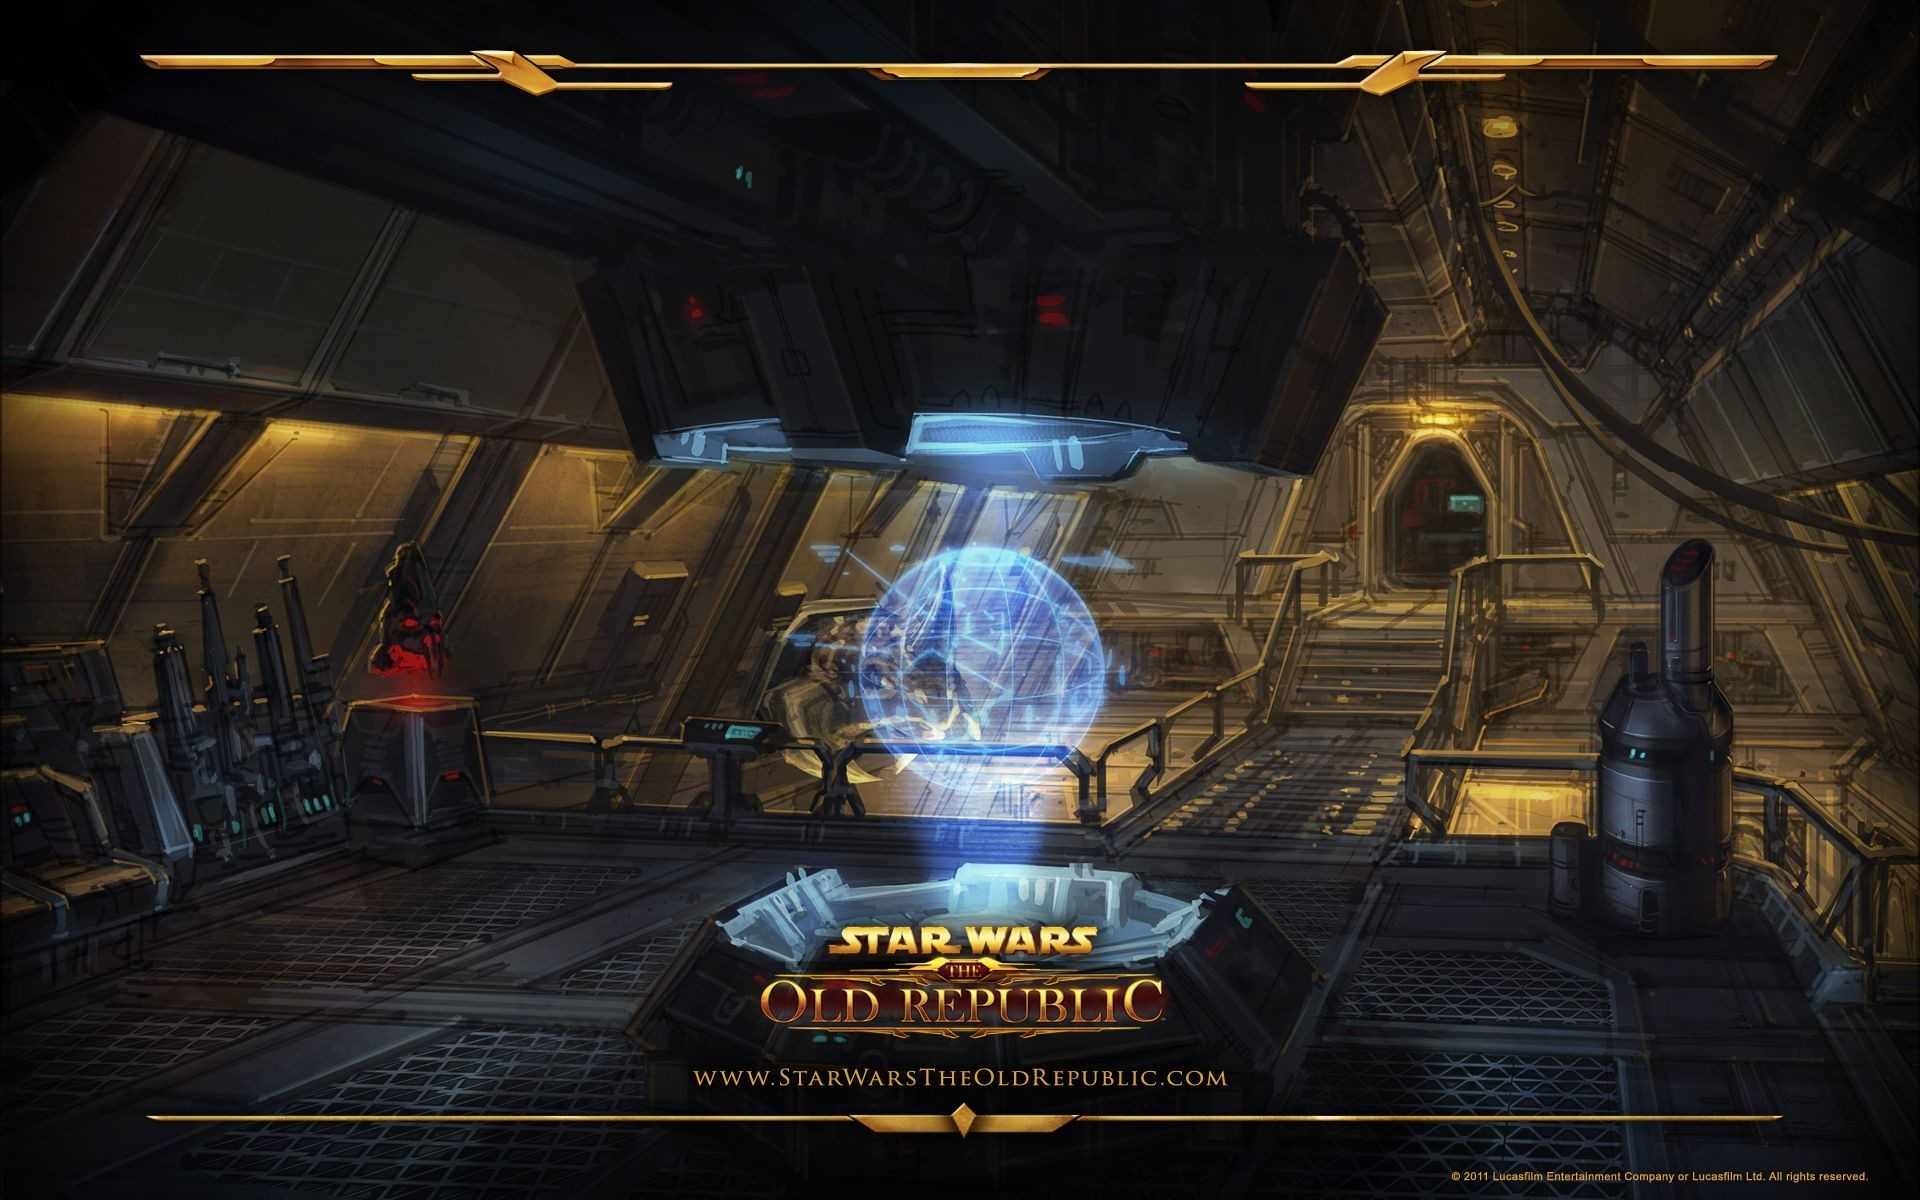 Res: 1920x1200, Star Wars the Old Republic HD wallpapers - Abbreviated as TOR or SWTOR